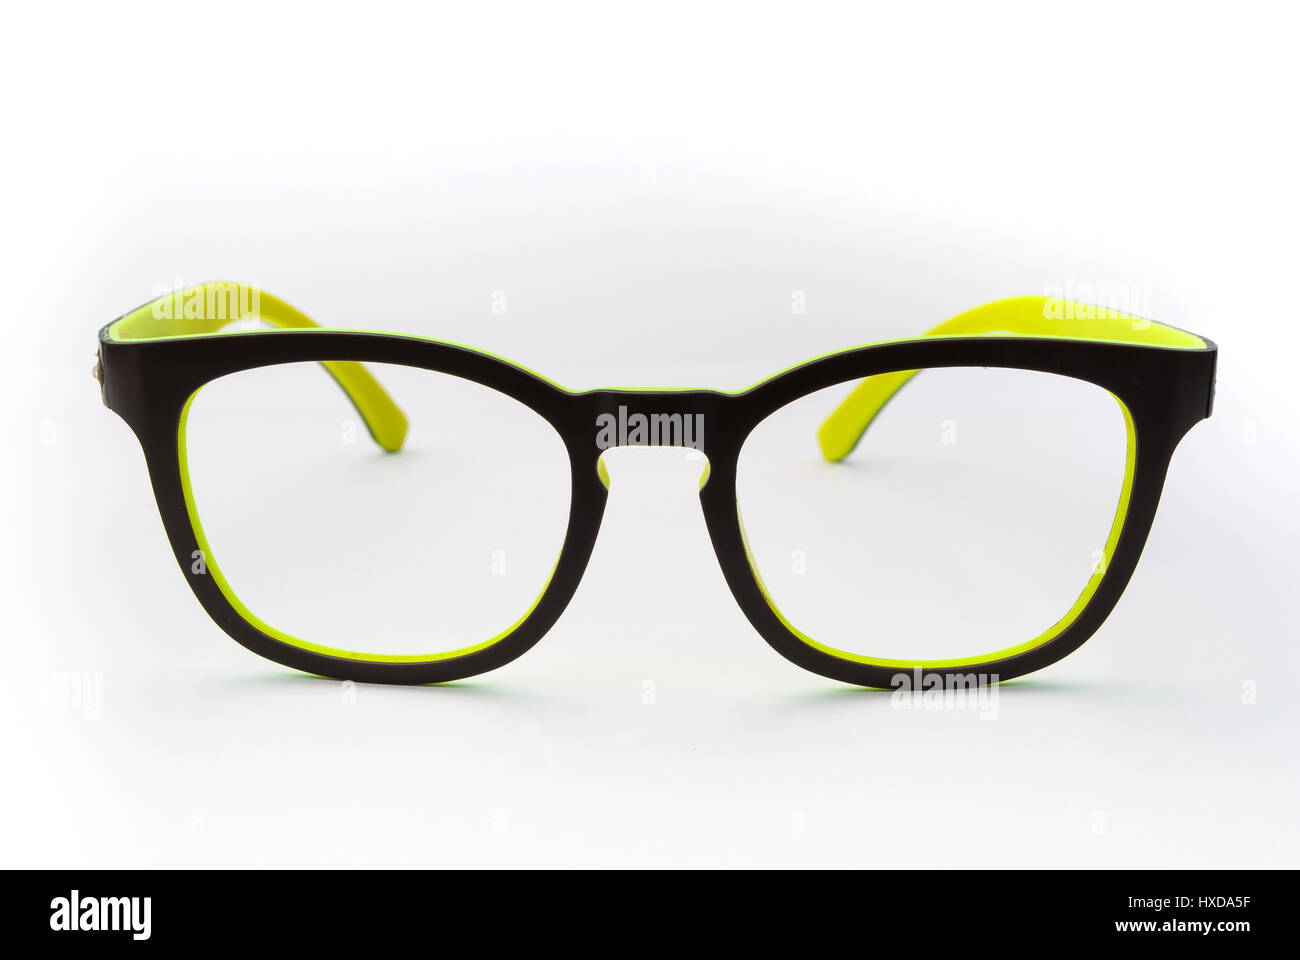 Nerd Black and Yellow Frame Glasses without Lens, Isolated - Stock Image